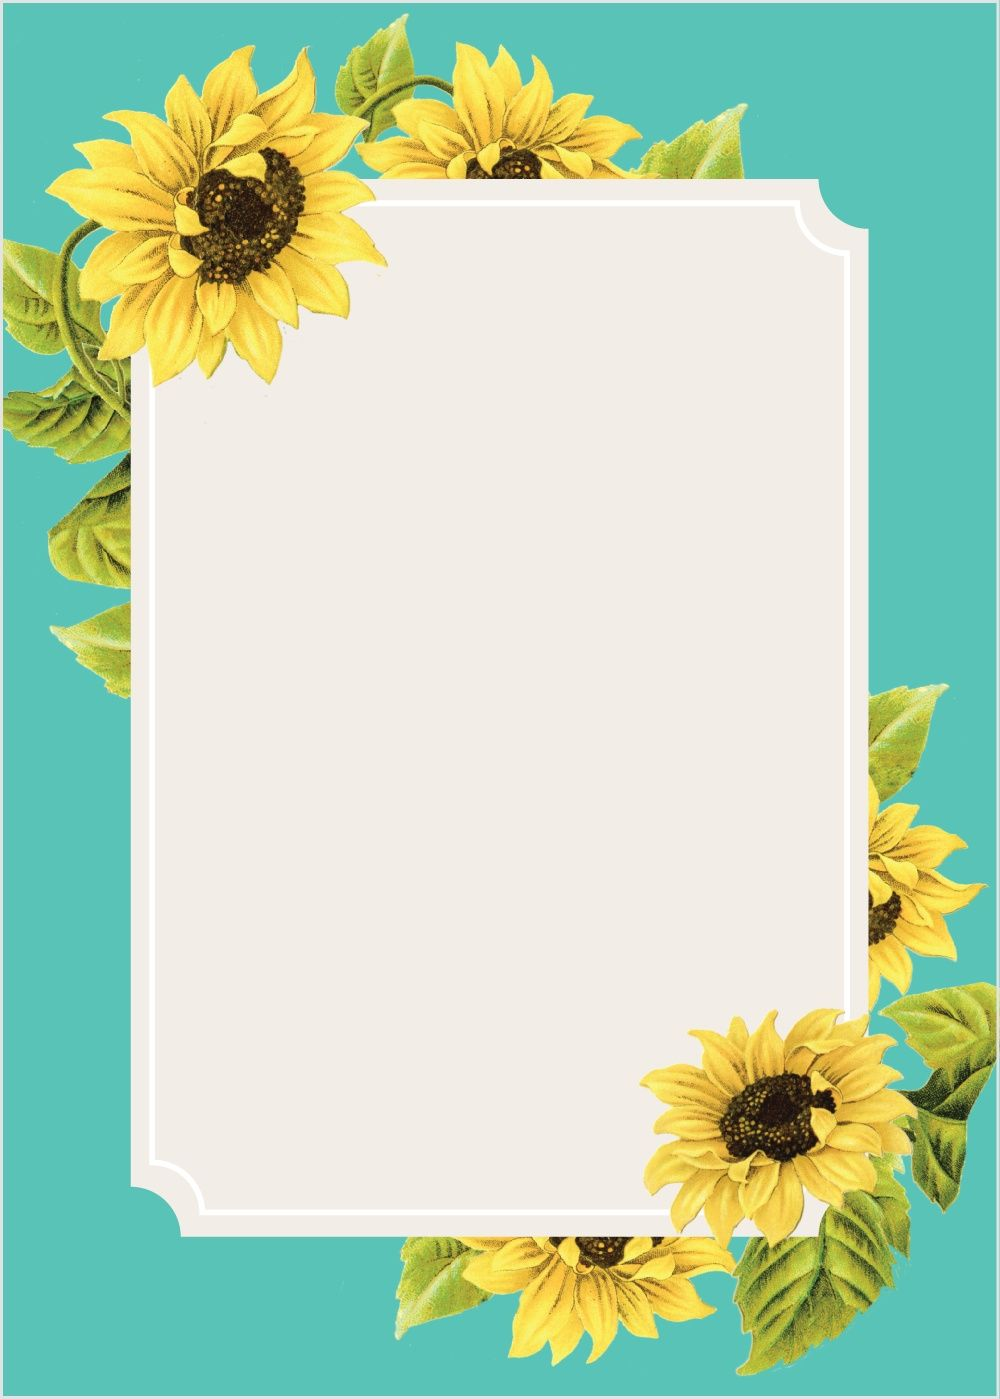 Sunflower Frame Wedding Invitations.